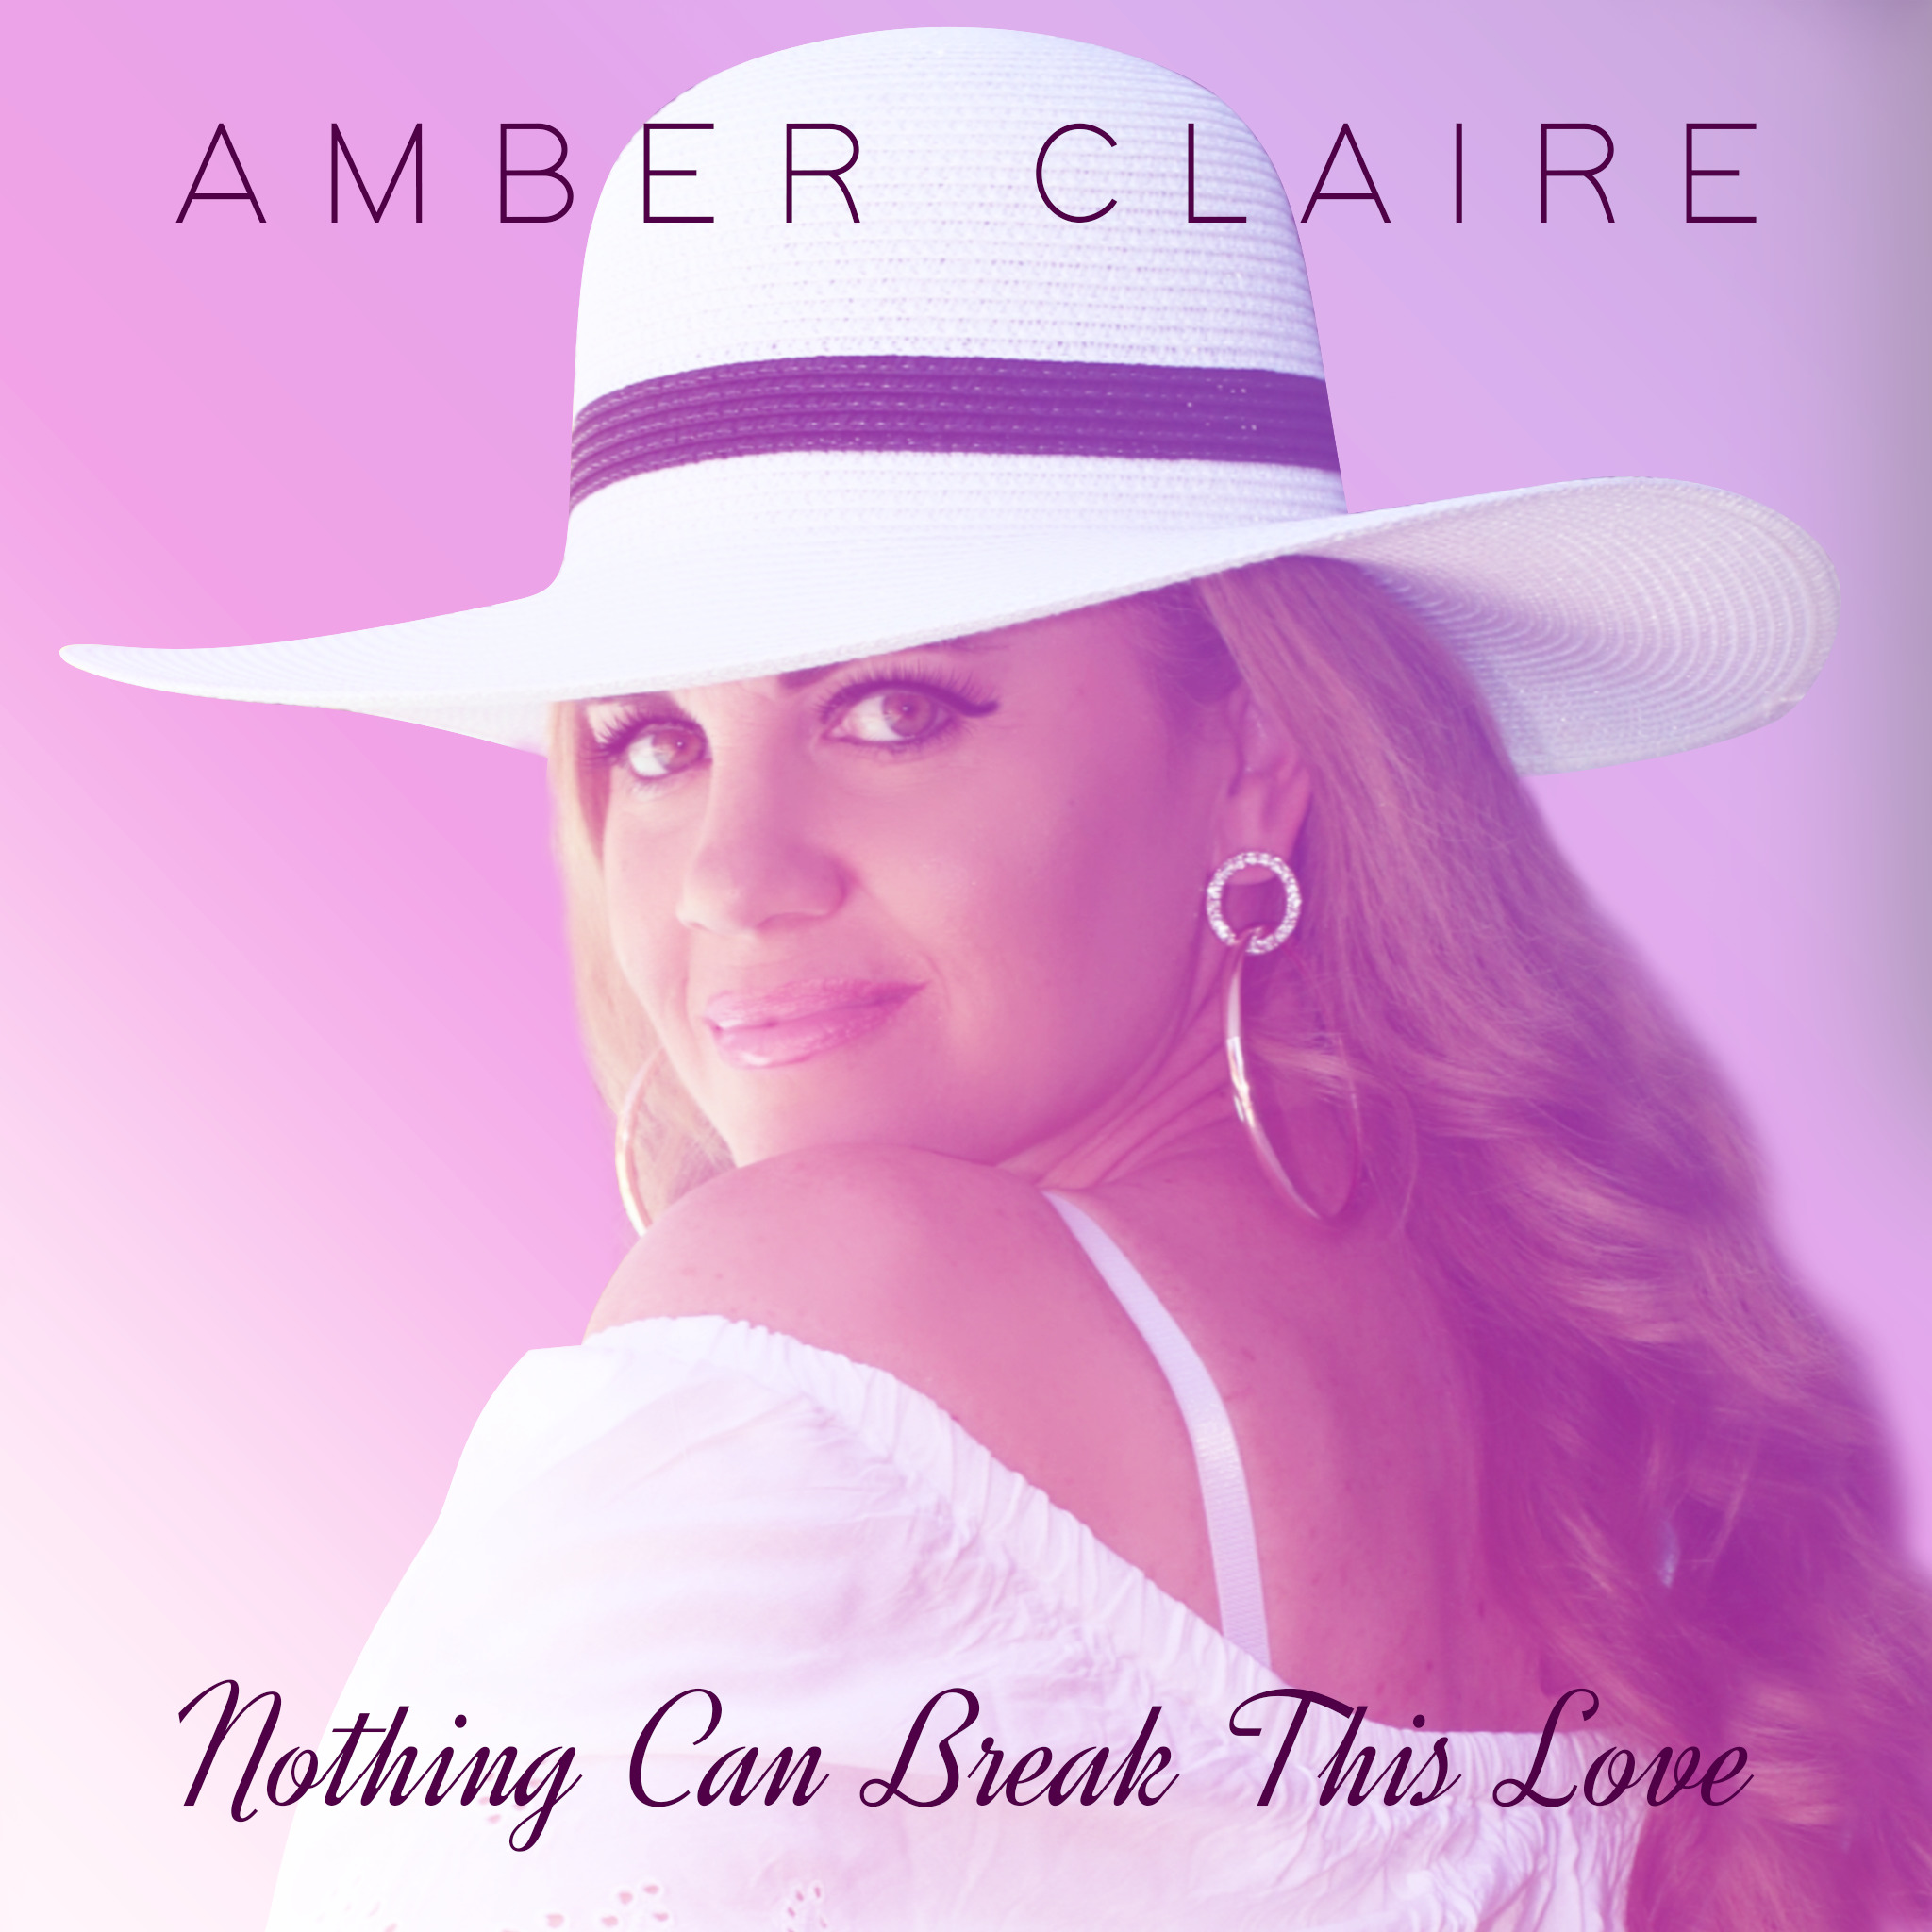 Amber Claire Music